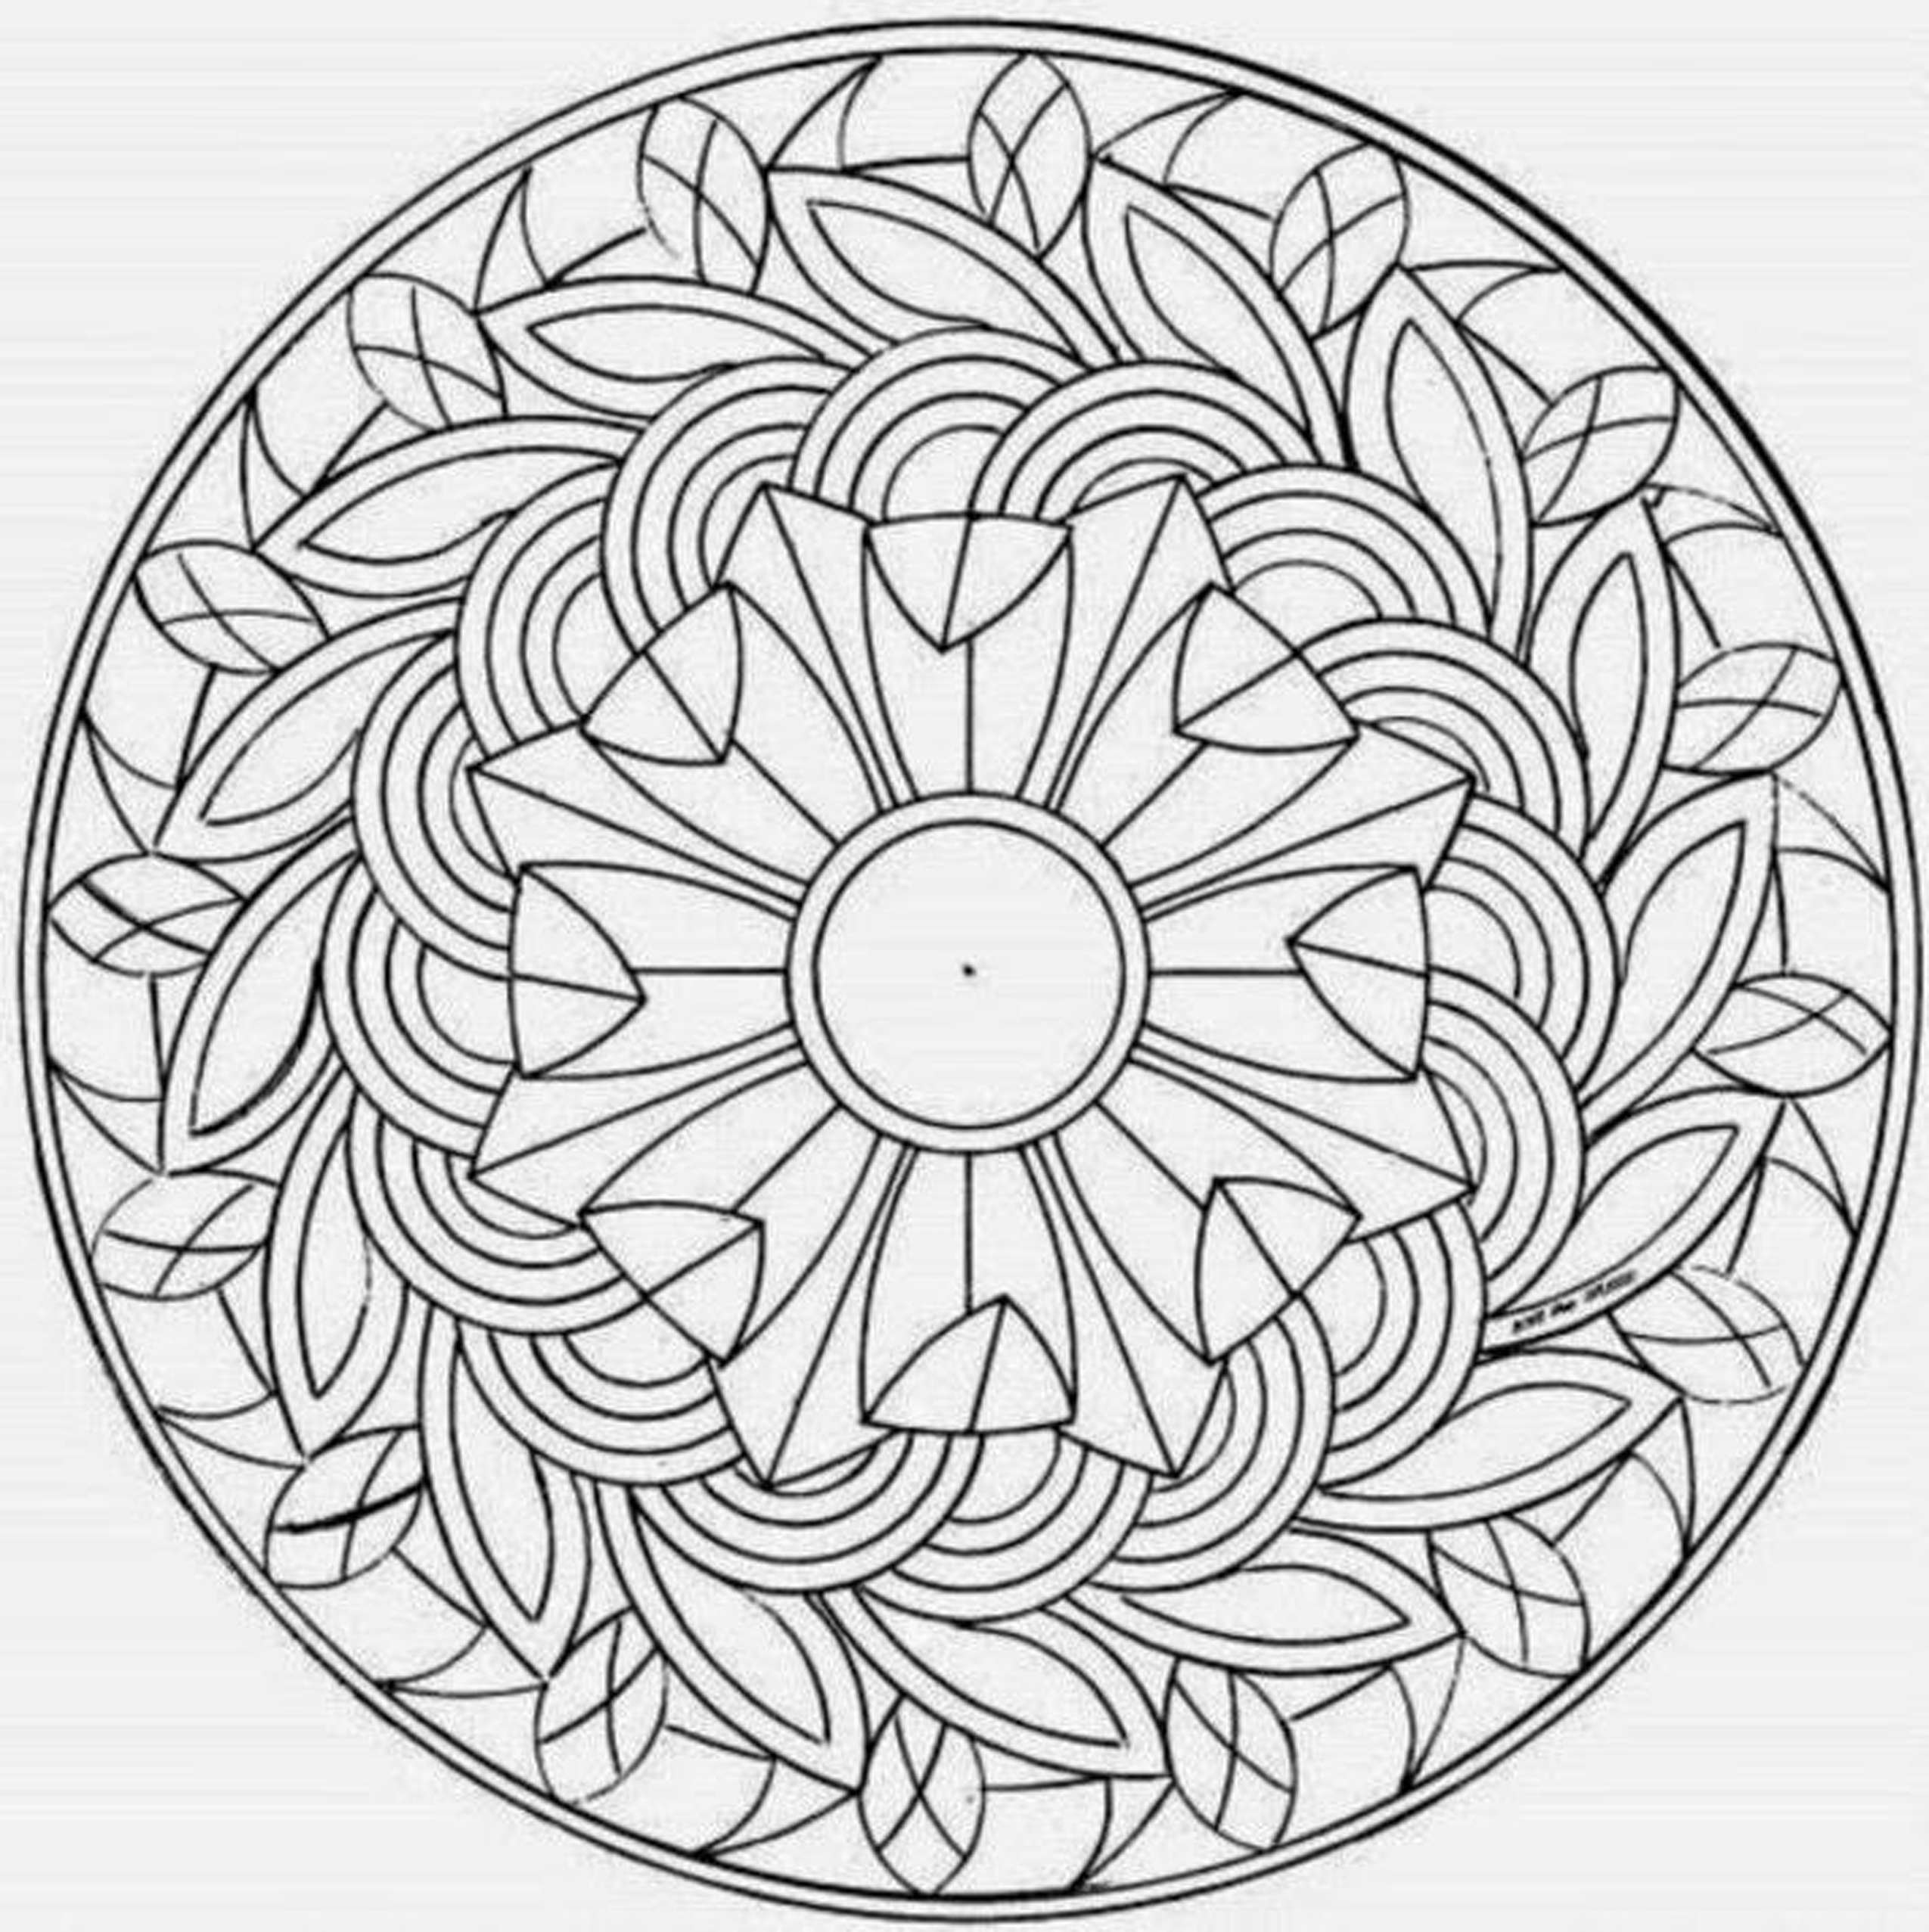 teenage colouring sheets print download coloring pages for girls recommend a teenage colouring sheets